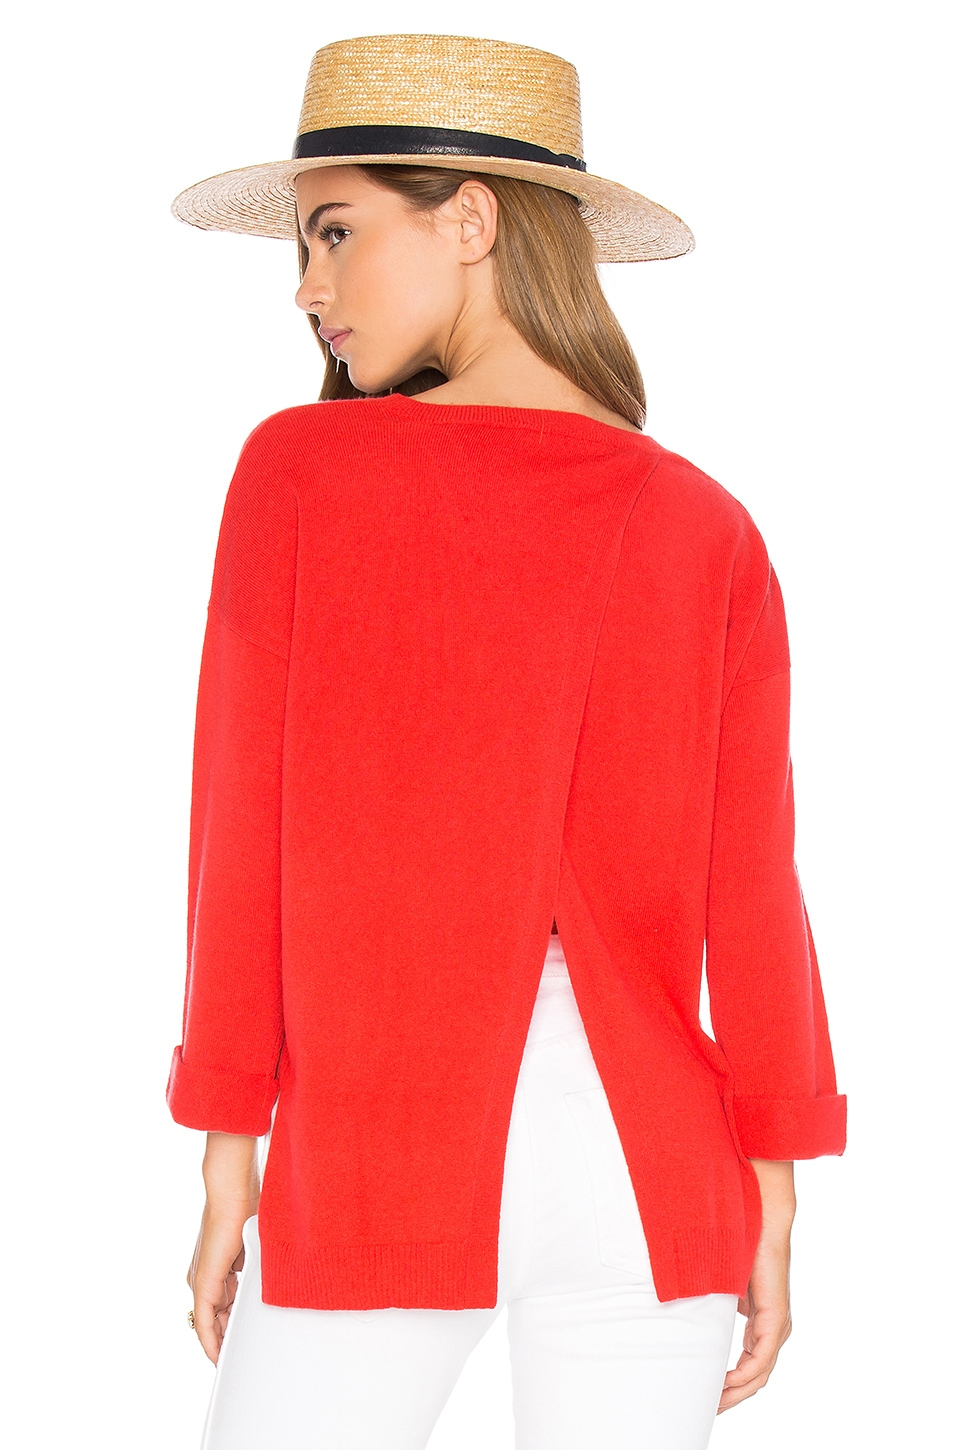 Autumn Cashmere High Low Open Back Sweater in Lava